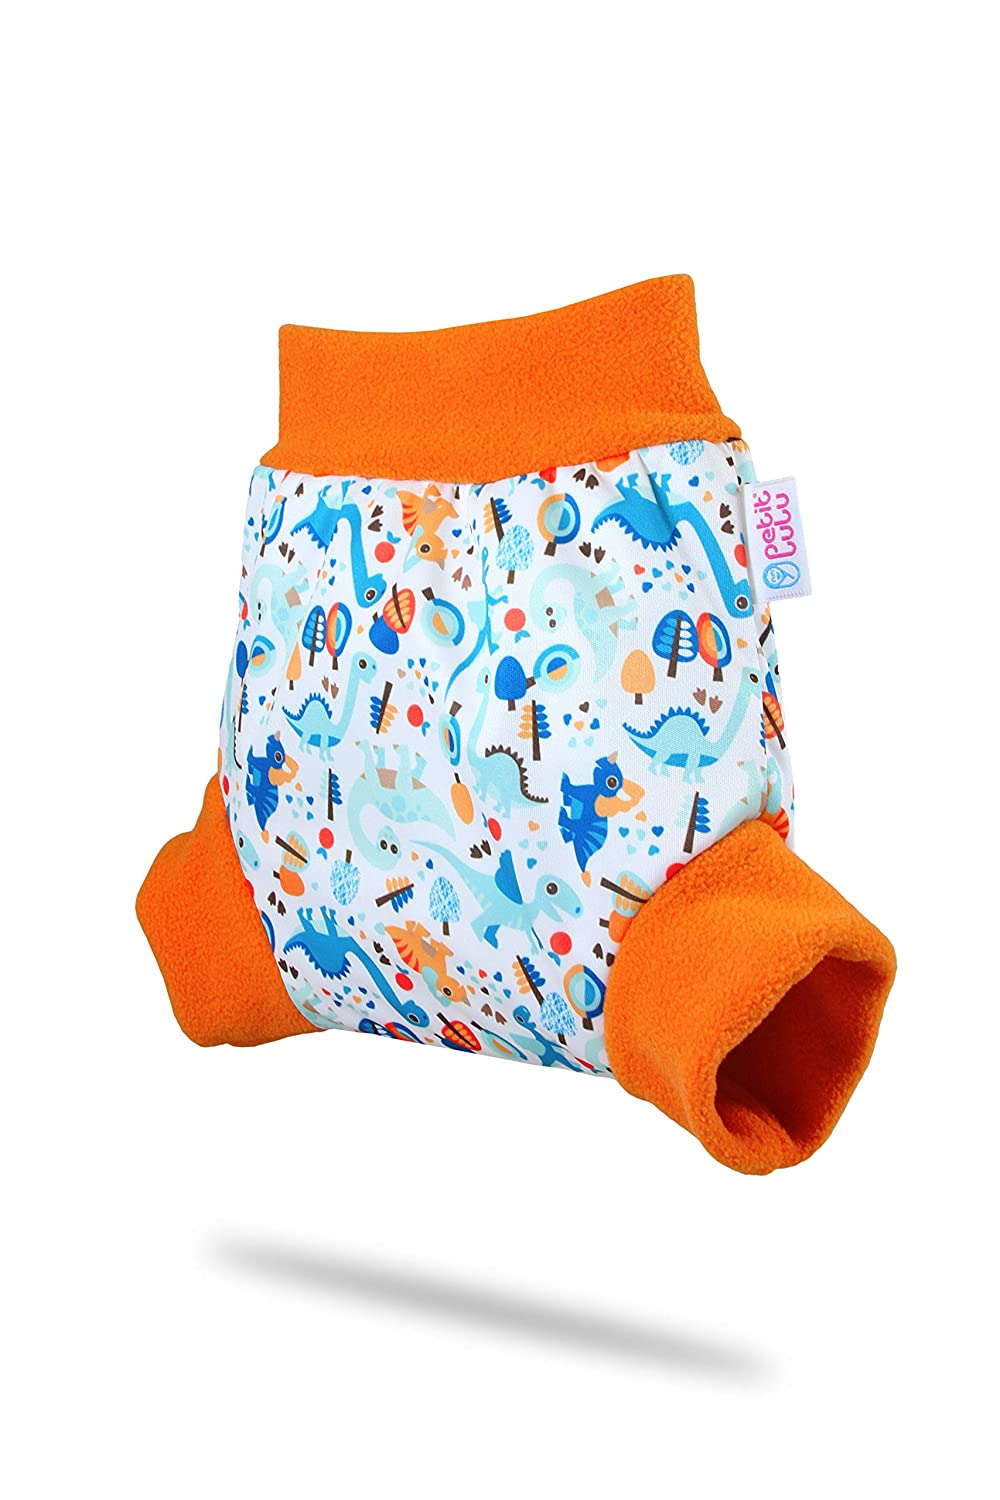 Petit Lulu Pull Up Diaper Wrap Easy /& Quick Changing , Size XL 5 Sizes Made in Europe Baby Elephants Blue Reusable /& Washable Waterproof